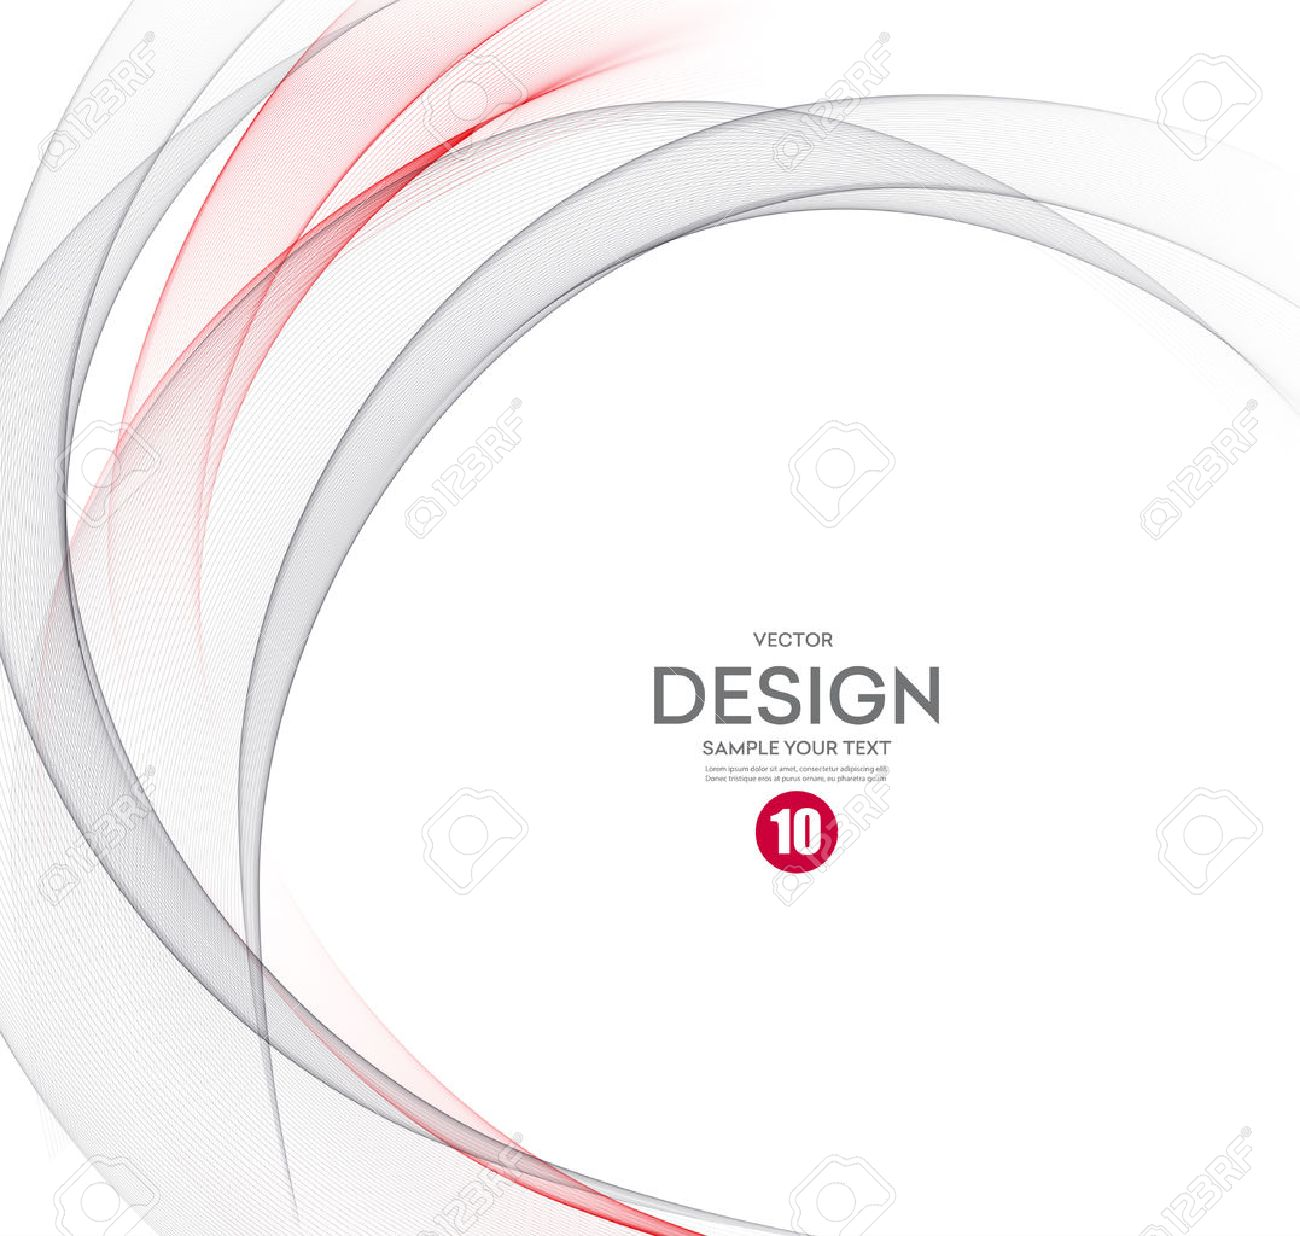 Abstract vector background, gray and red waved lines for brochure, website, flyer design. illustration eps10 - 54434247